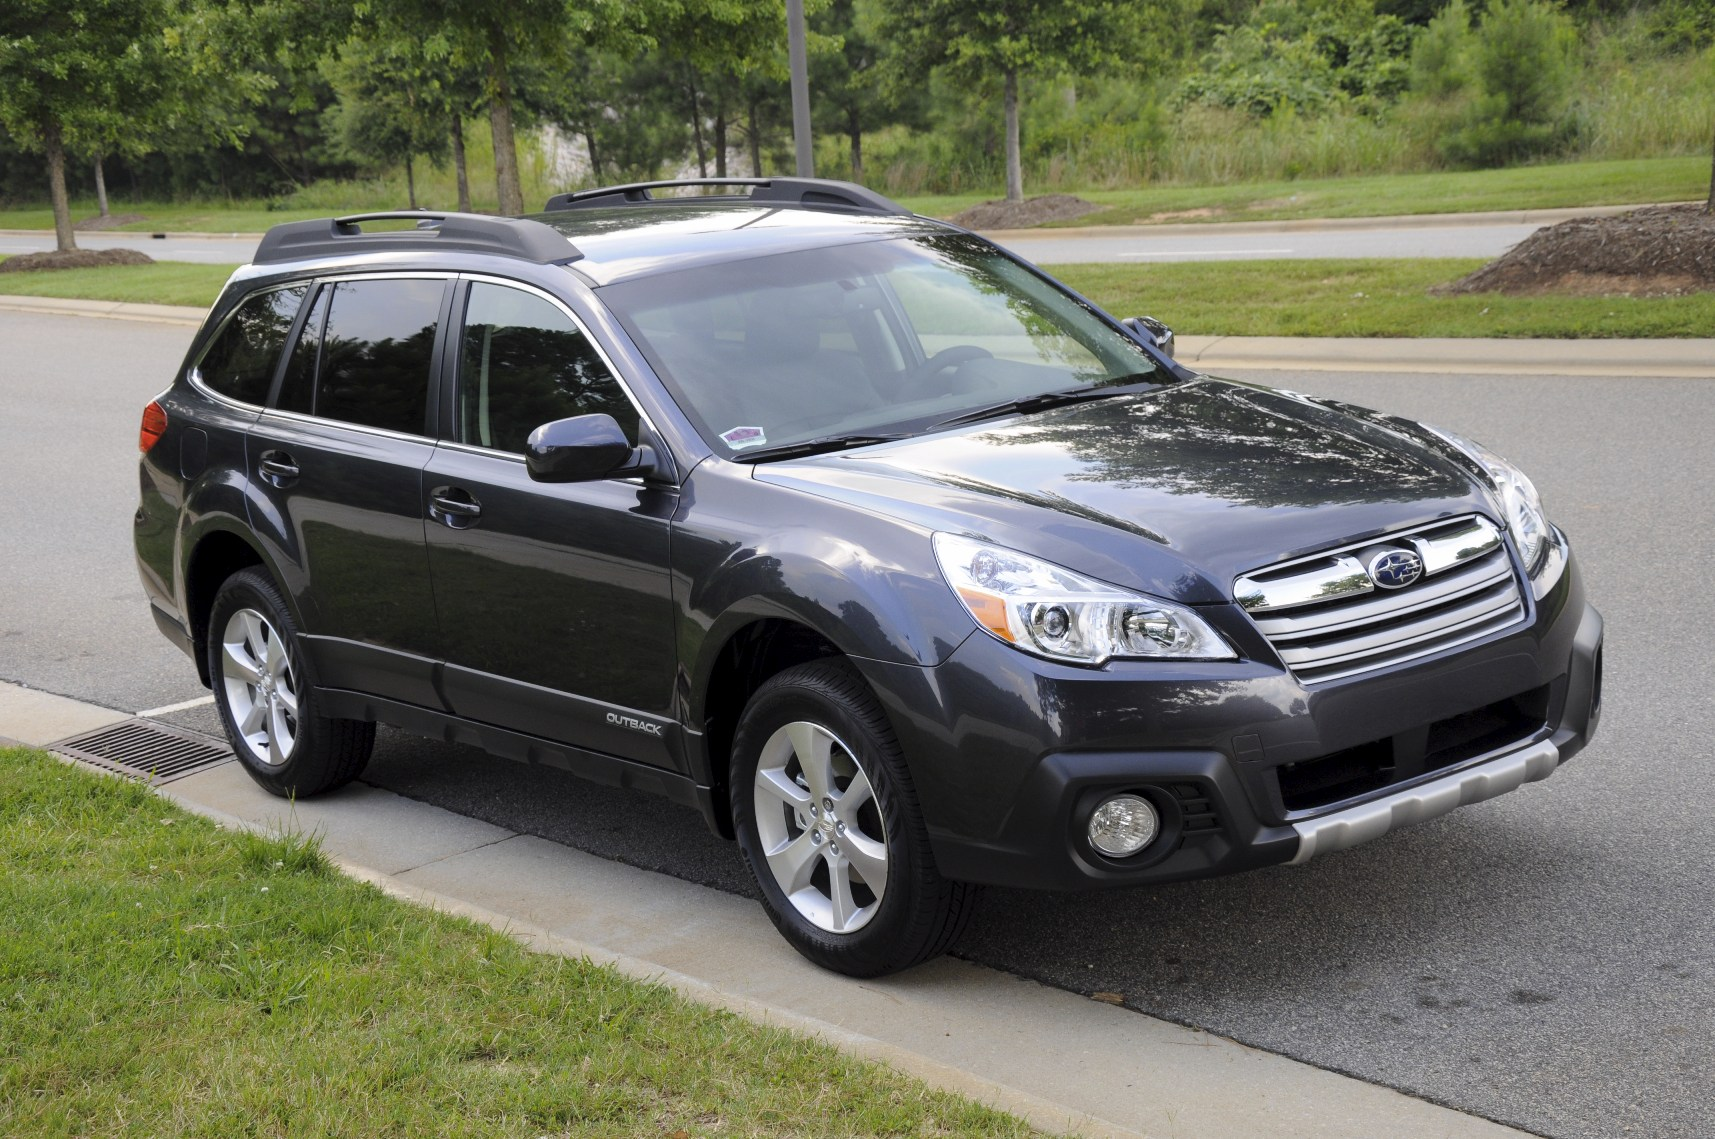 2013 subaru outback information and photos zombiedrive 2013 subaru outback 13 subaru outback 13 vanachro Choice Image